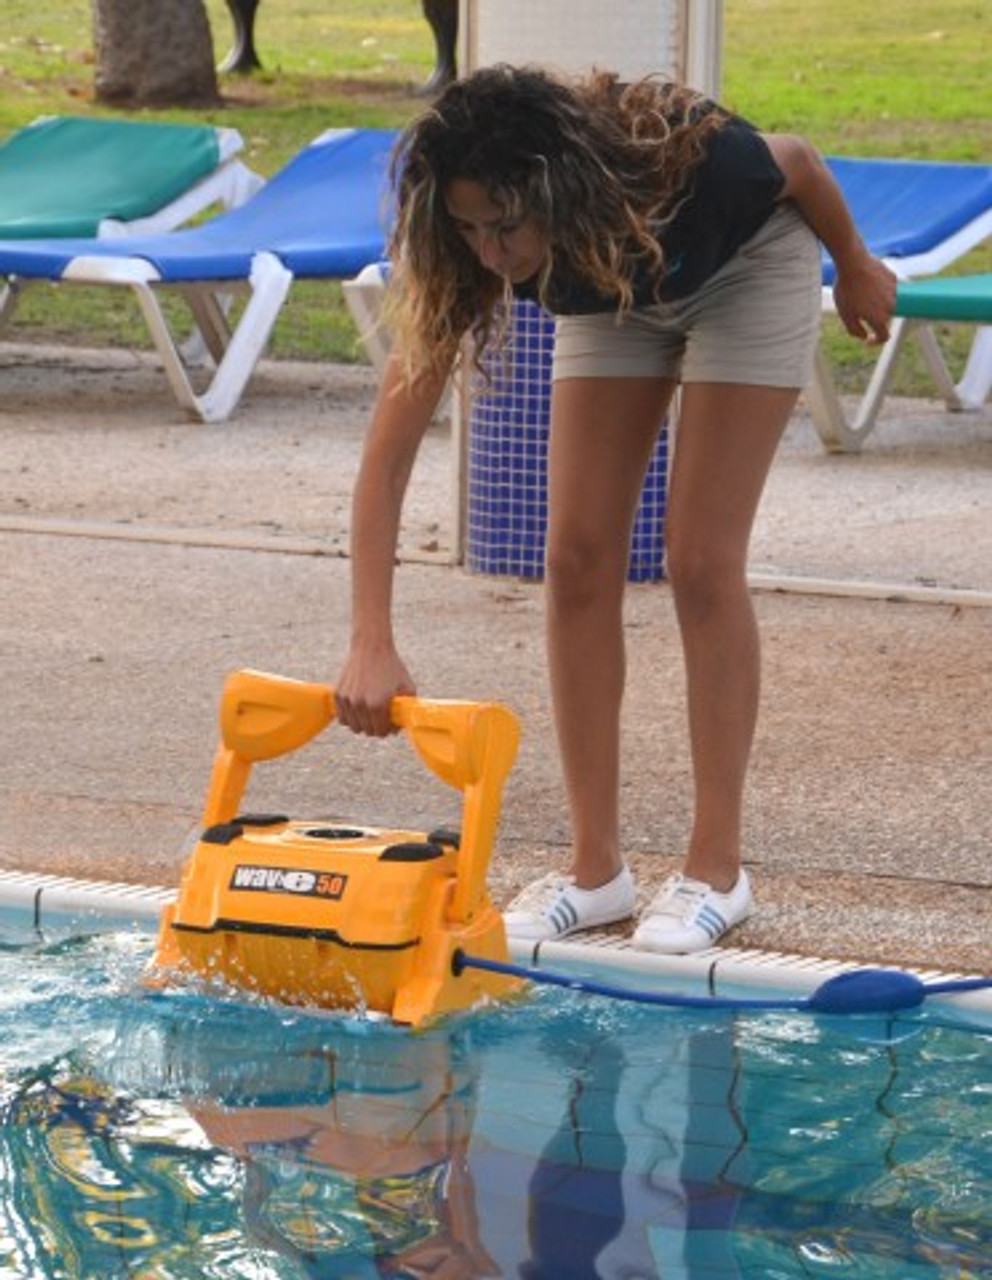 Dolphin Wave 50 robotic automatic commercial swimming pool cleaner